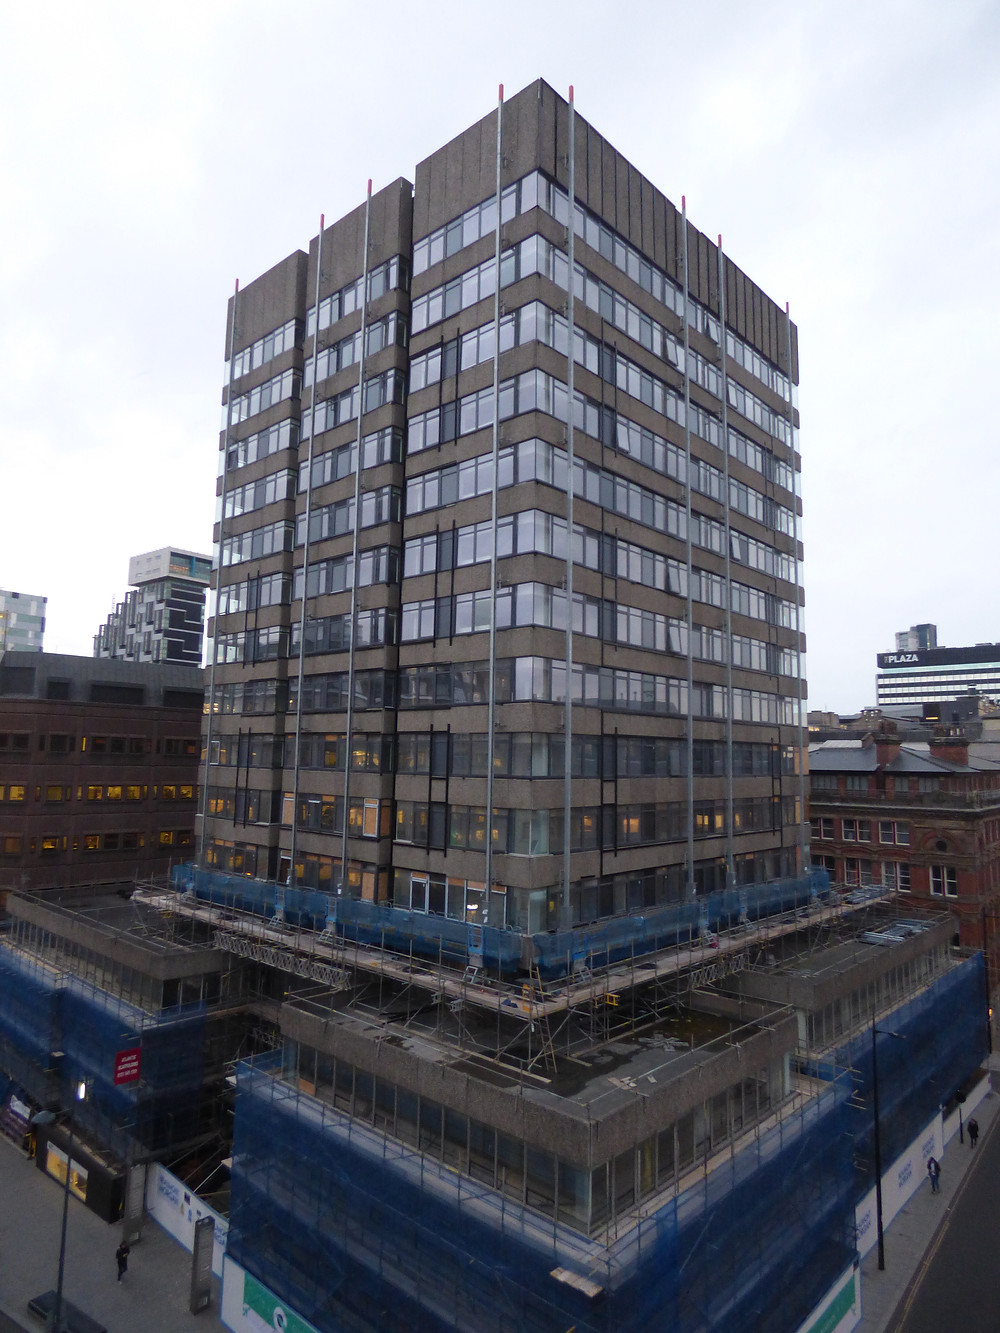 Silkhouse Court photographed from another high rise, the Tempest Building, in The Commercial District (Credit: The Liverpudlian/Peter Eric Lang).